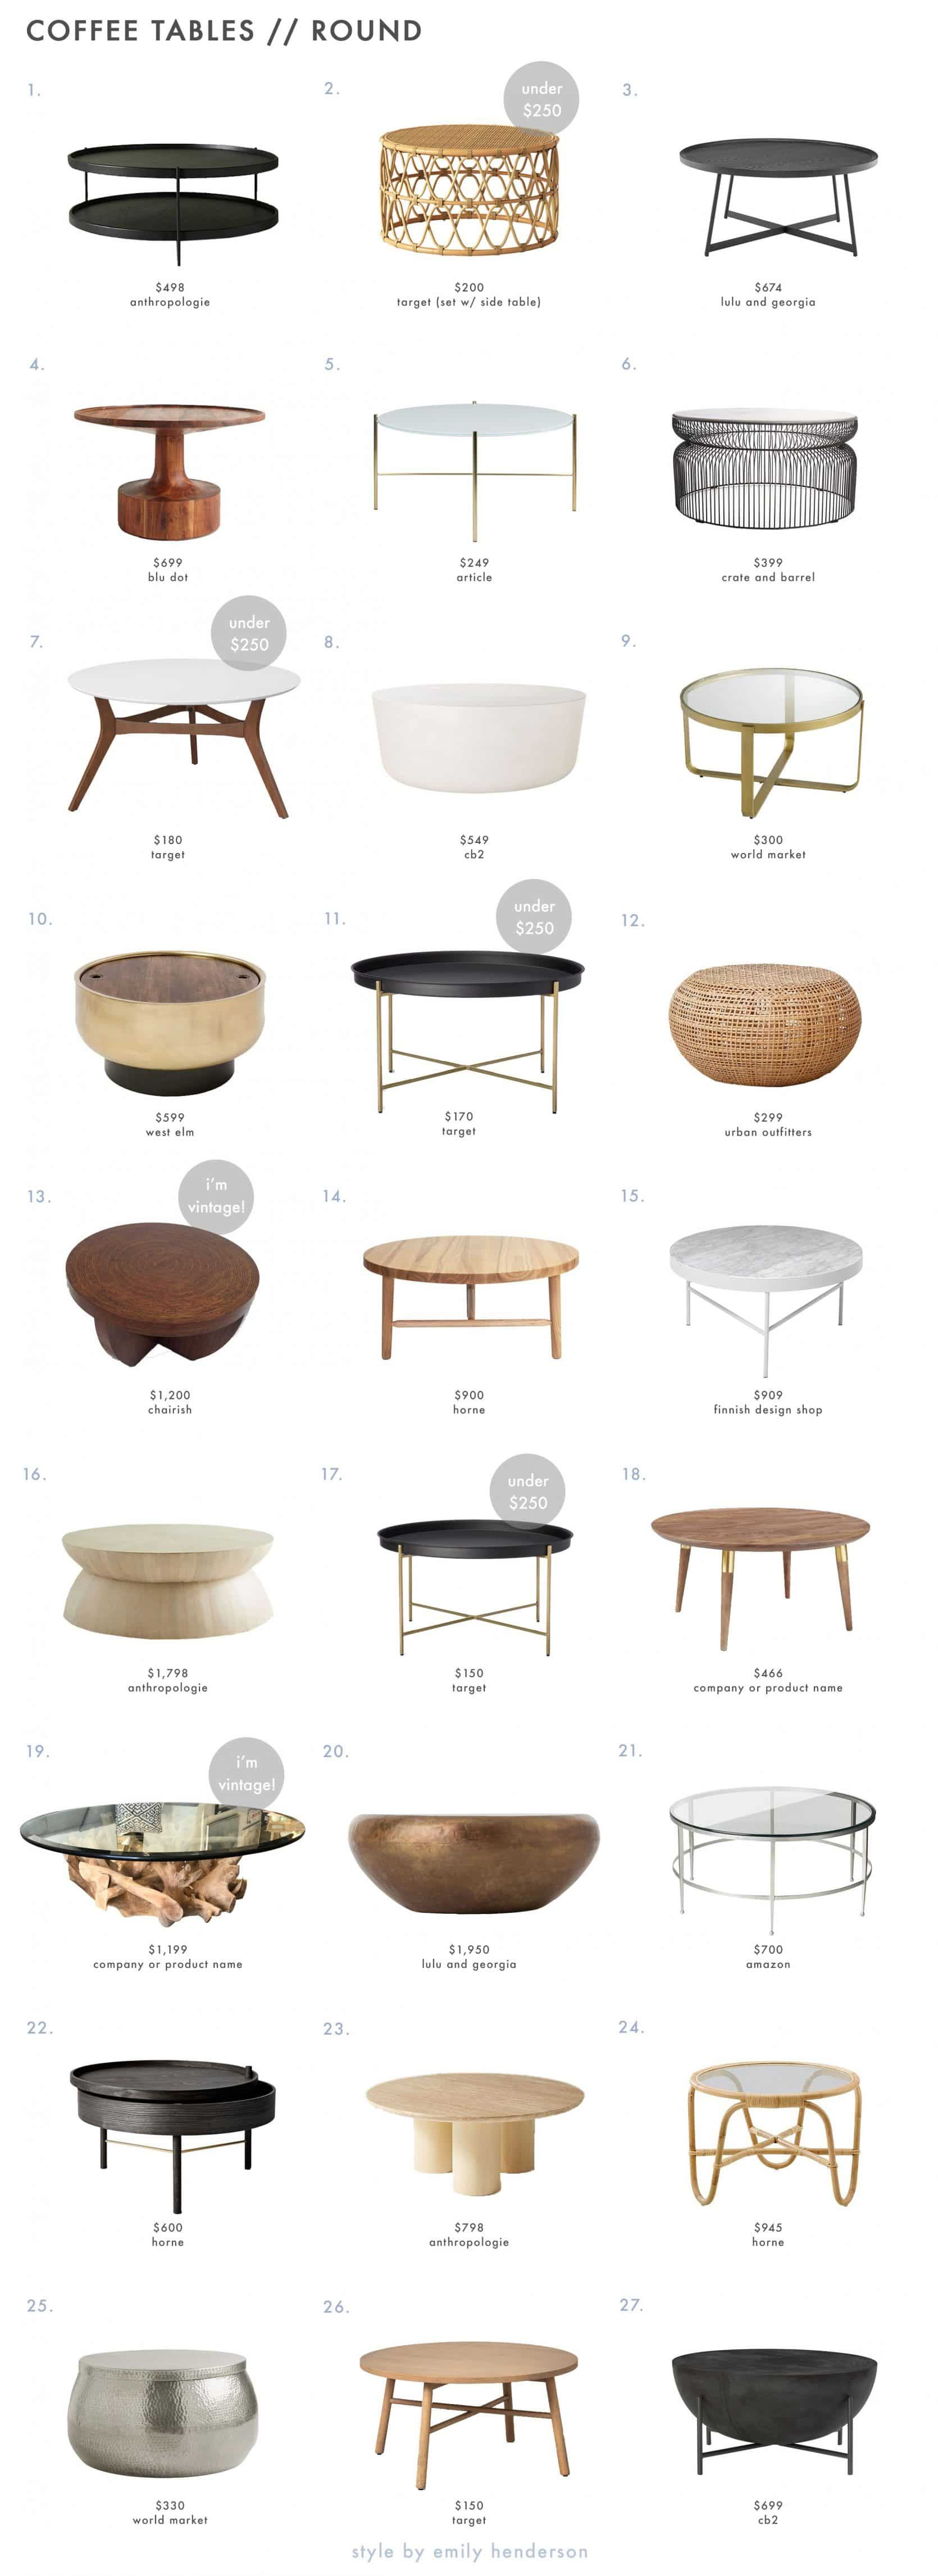 How To Pick A Coffee Table 105 Picks For Every Space Round Coffee Table Living Room Living Room Coffee Table Coffee Table For Small Living Room [ 4587 x 1670 Pixel ]